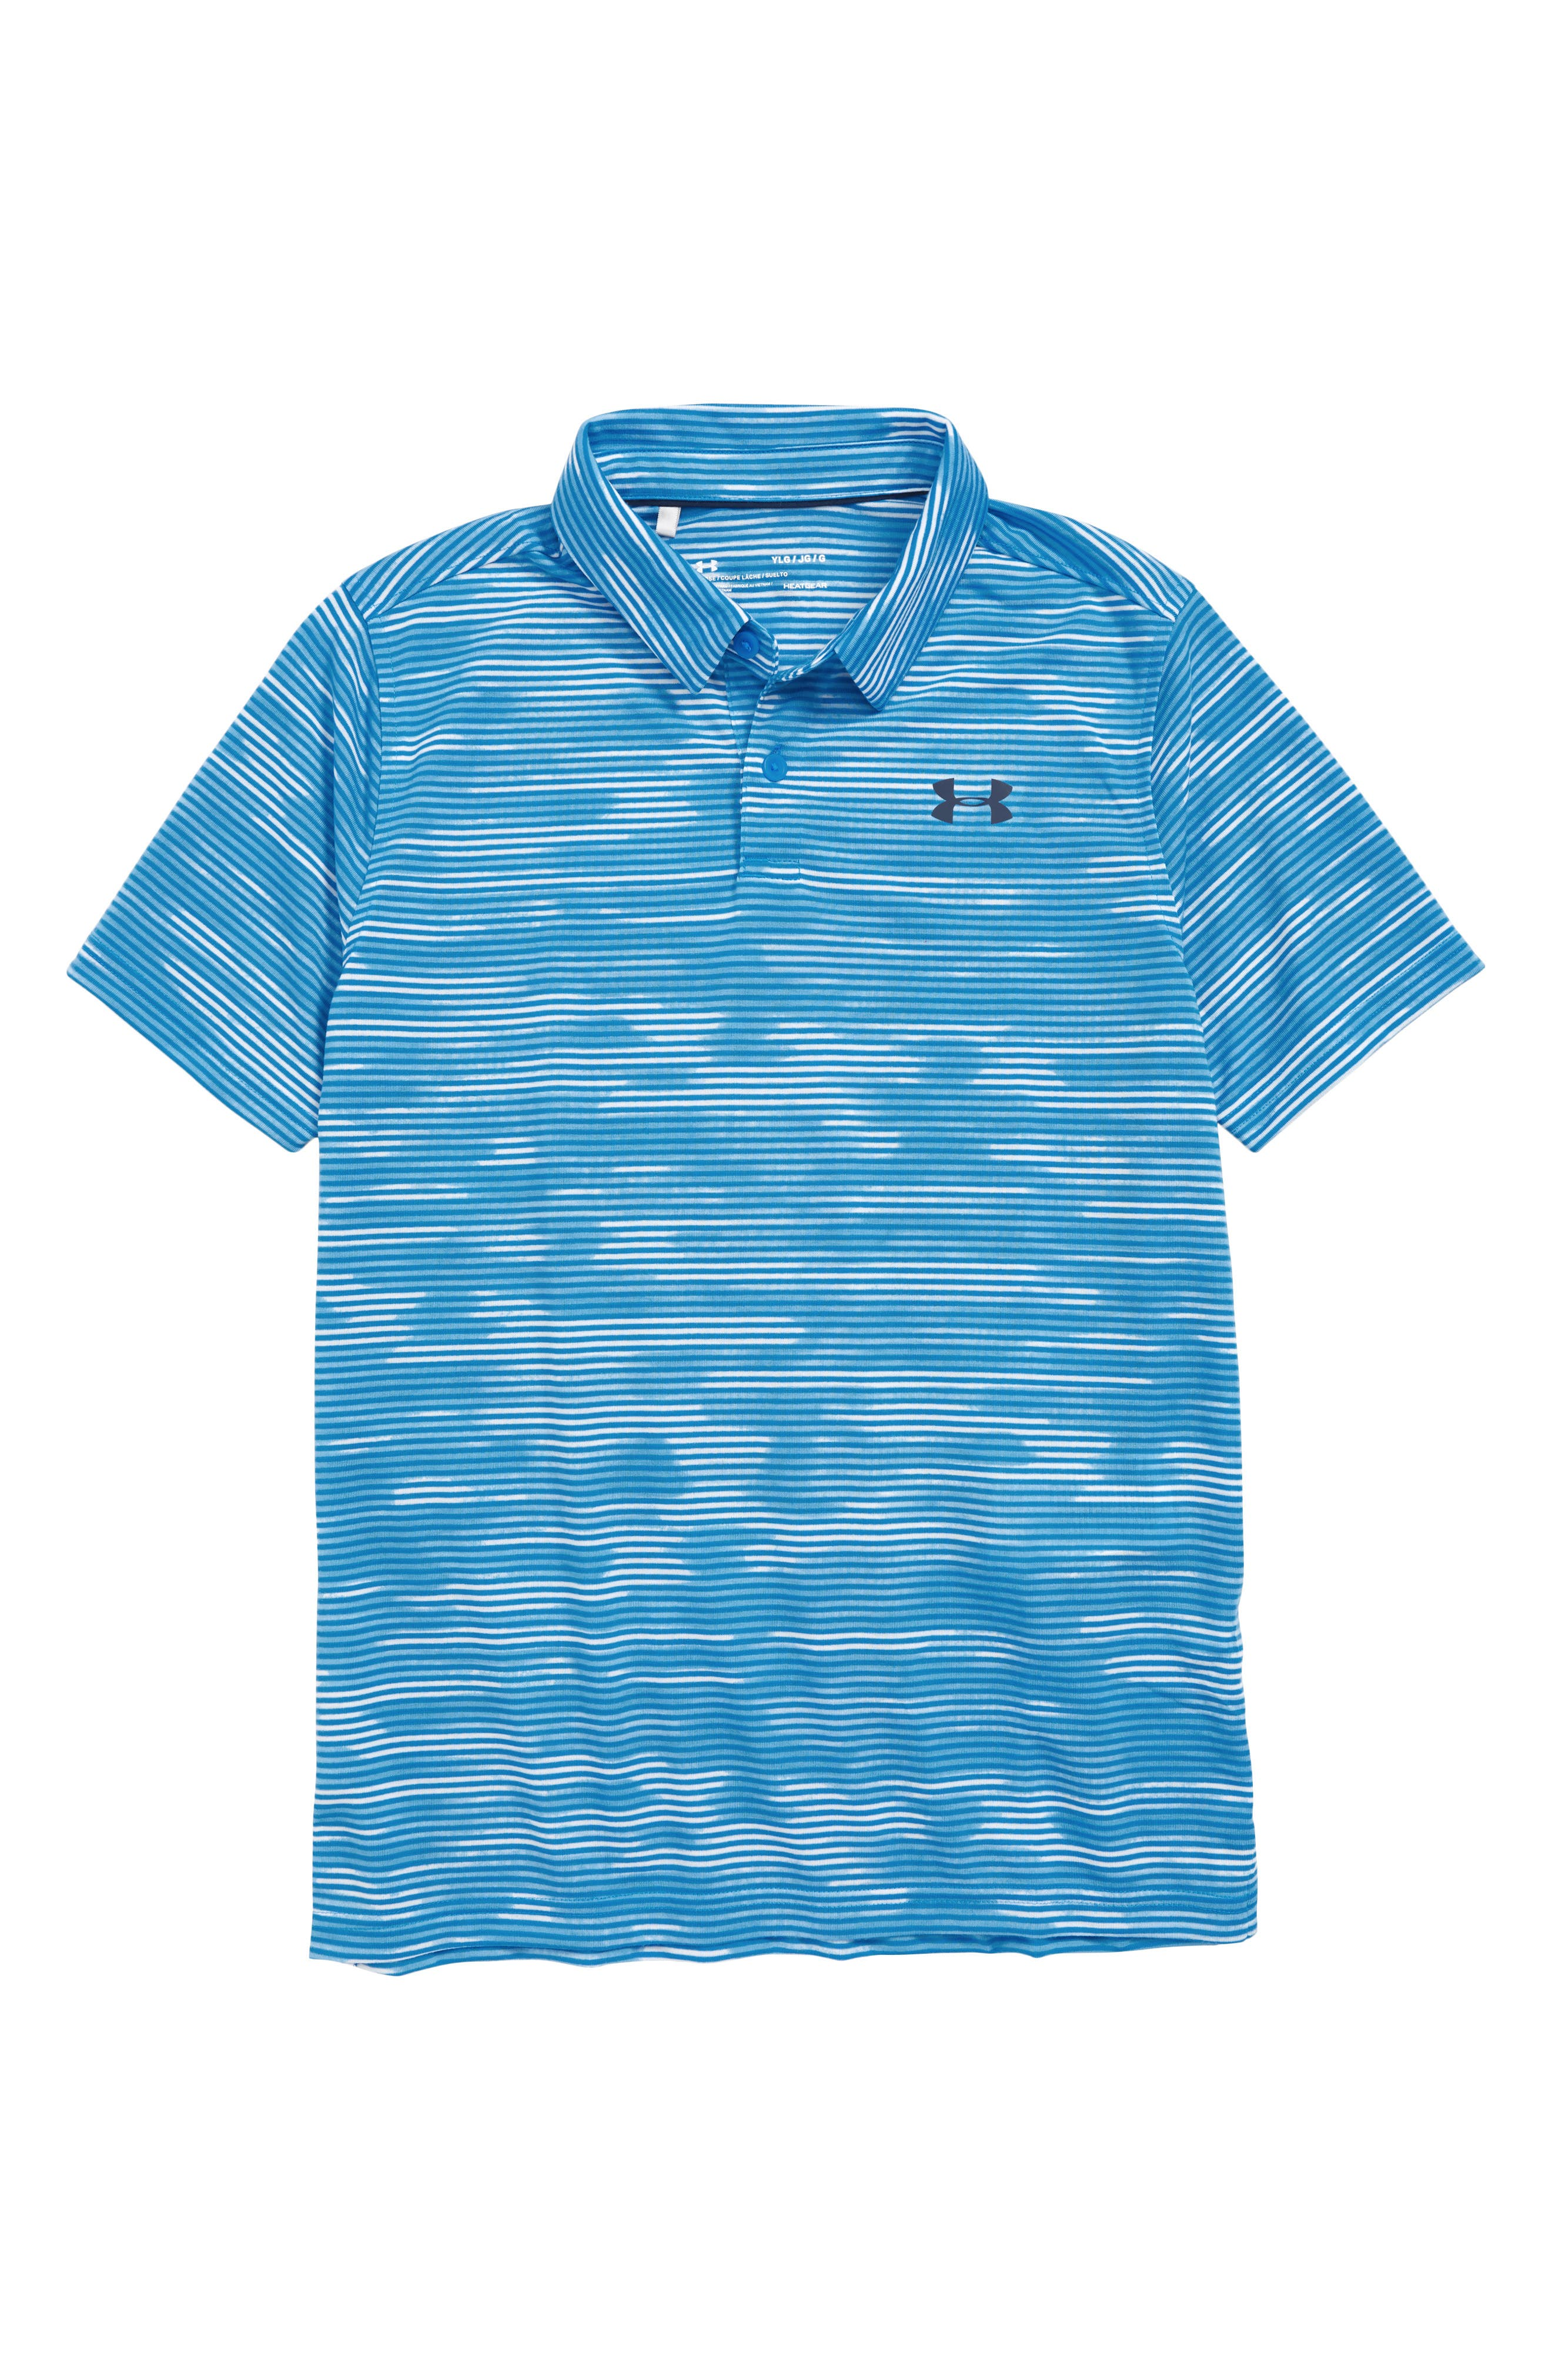 Boys Under Armour Threadborne Polo Size M (1012)  Blue